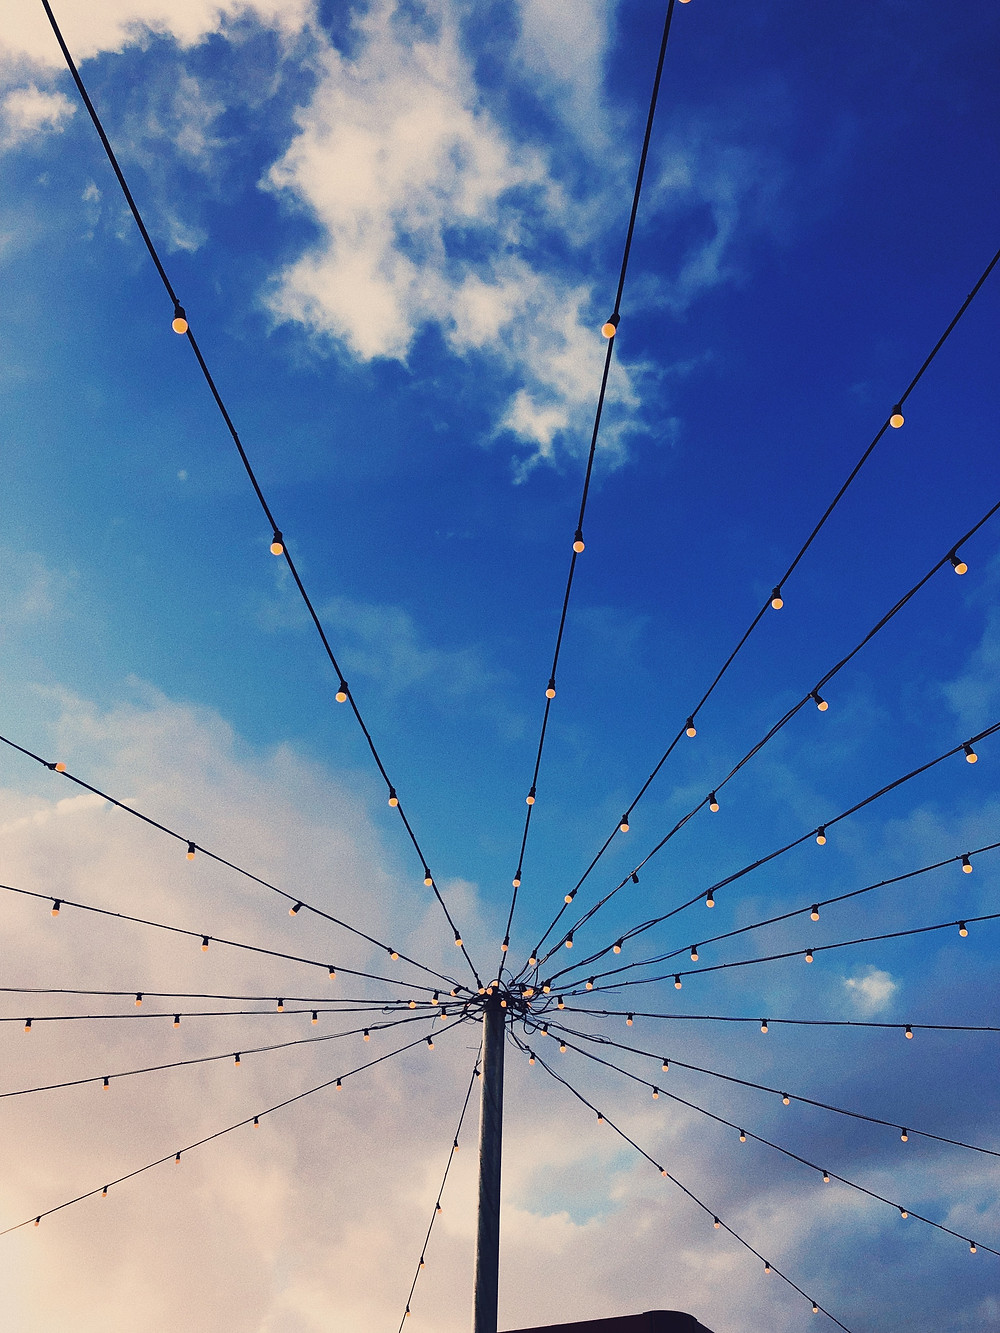 A series of strings containing fairy lights spread out as spokes from a central pole, with a blue cloudy sky behind them. Image is courtesy of Bruno Figueiredo on Unsplash